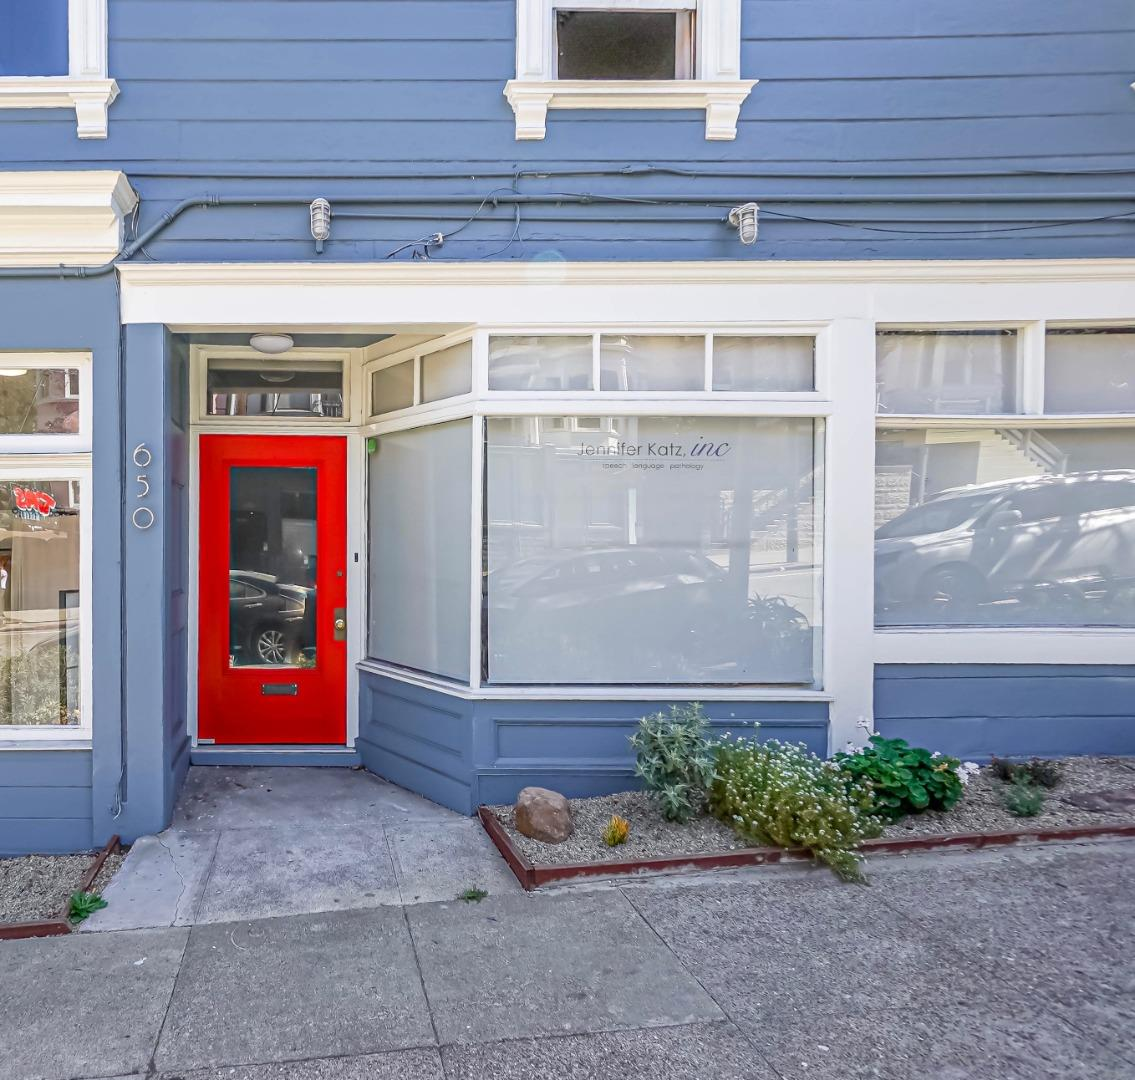 Commercial for Lease on Fillmore Street, Hayes Valley, San Francisco.  Vacant and ready for you to move your business right in! Sectioned, spacious, nice, clean and bright.  Laminated wood flooring throughout.  Highly Visible: One block from Alamo Square.  Perfect for office, intellectual services or small business operation.  Tenant to check in with the City Planning and Building Department for any other Conditional Usage of the space, current zoning is NC-1.   Desirable Location: Foot Traffic, Mixed Residential and Commercial Neighborhood, Minutes to Downtown San Francisco, City Hall, Restaurants, Safeway, Shops, Post Office, Banks, easy access to Freeways 80, 101 and 280.